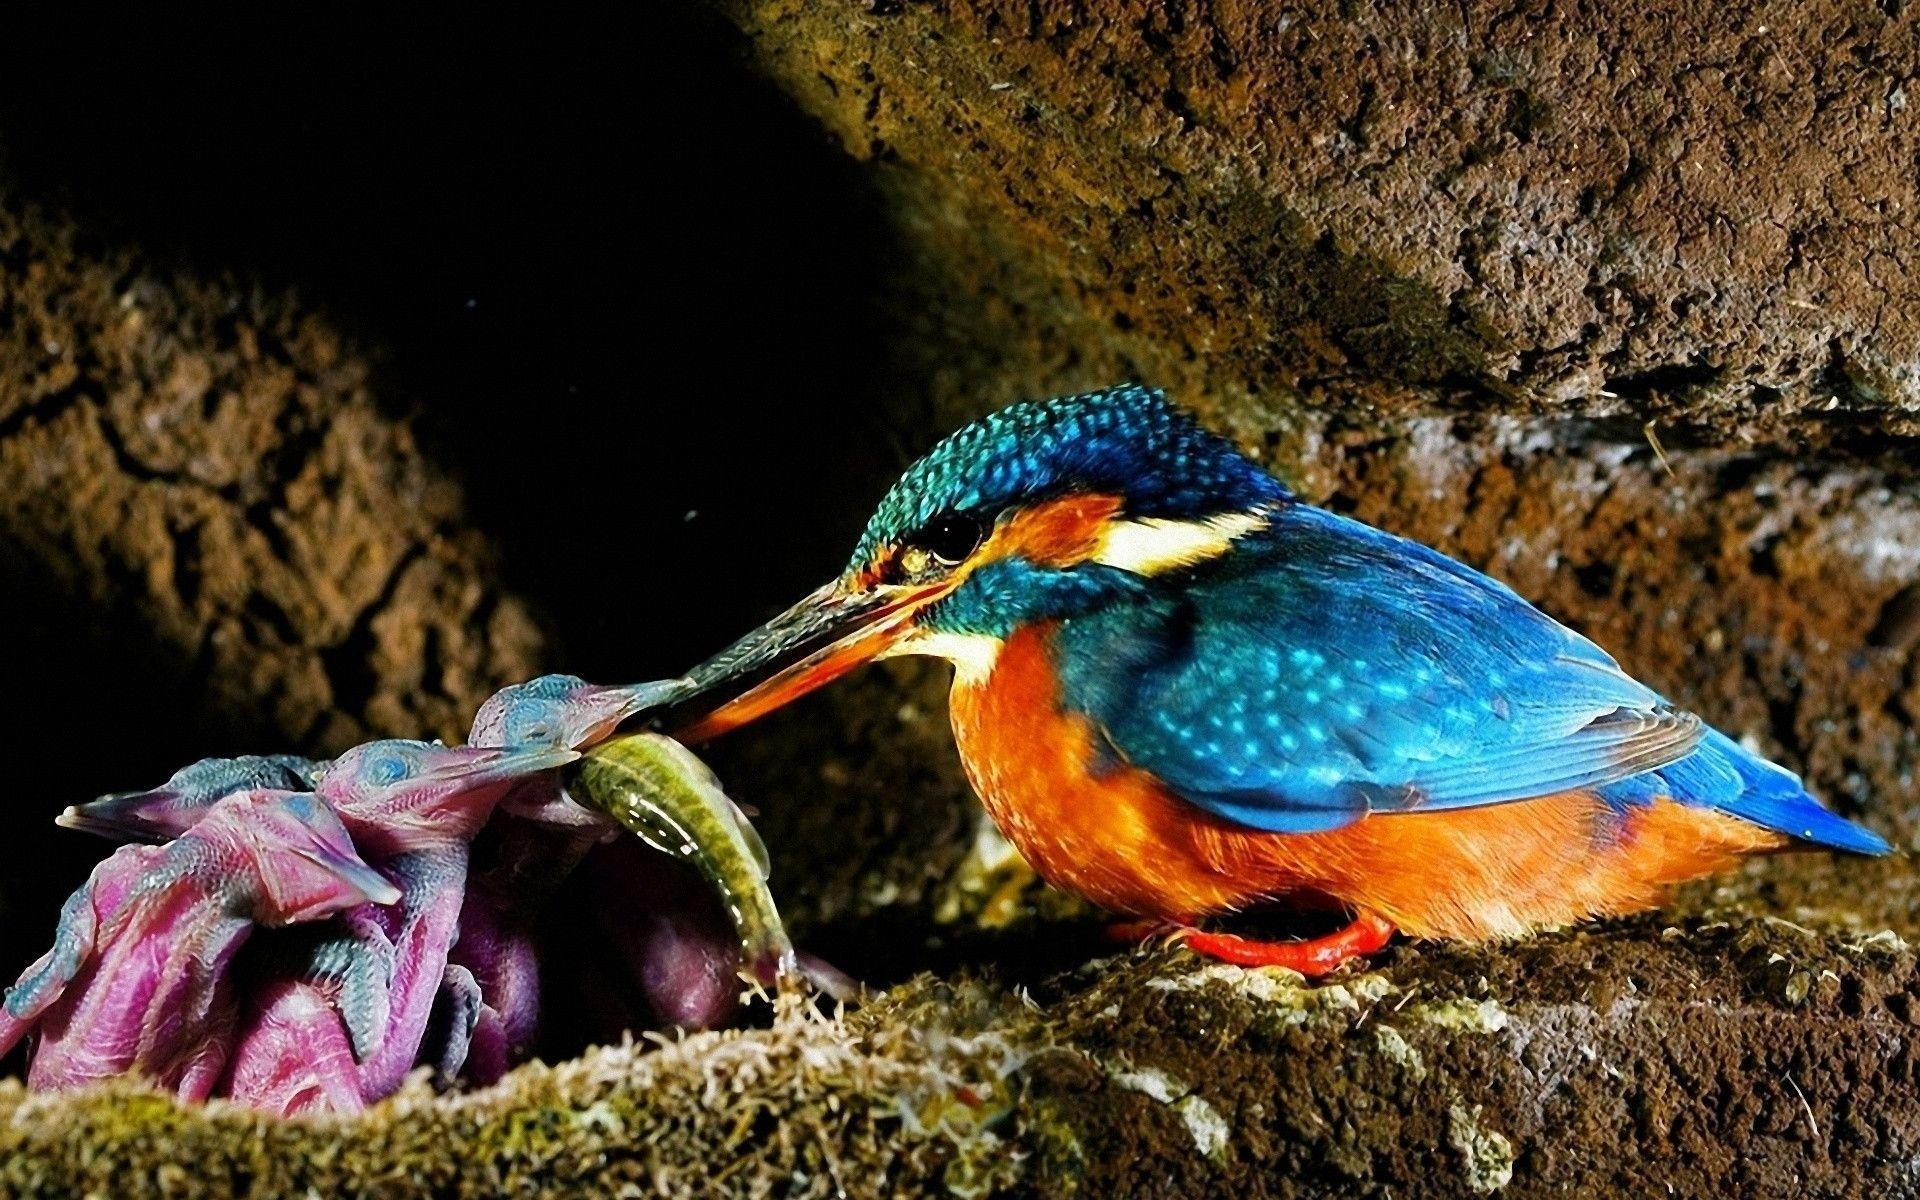 kingfisher wallpapers hd - photo #9